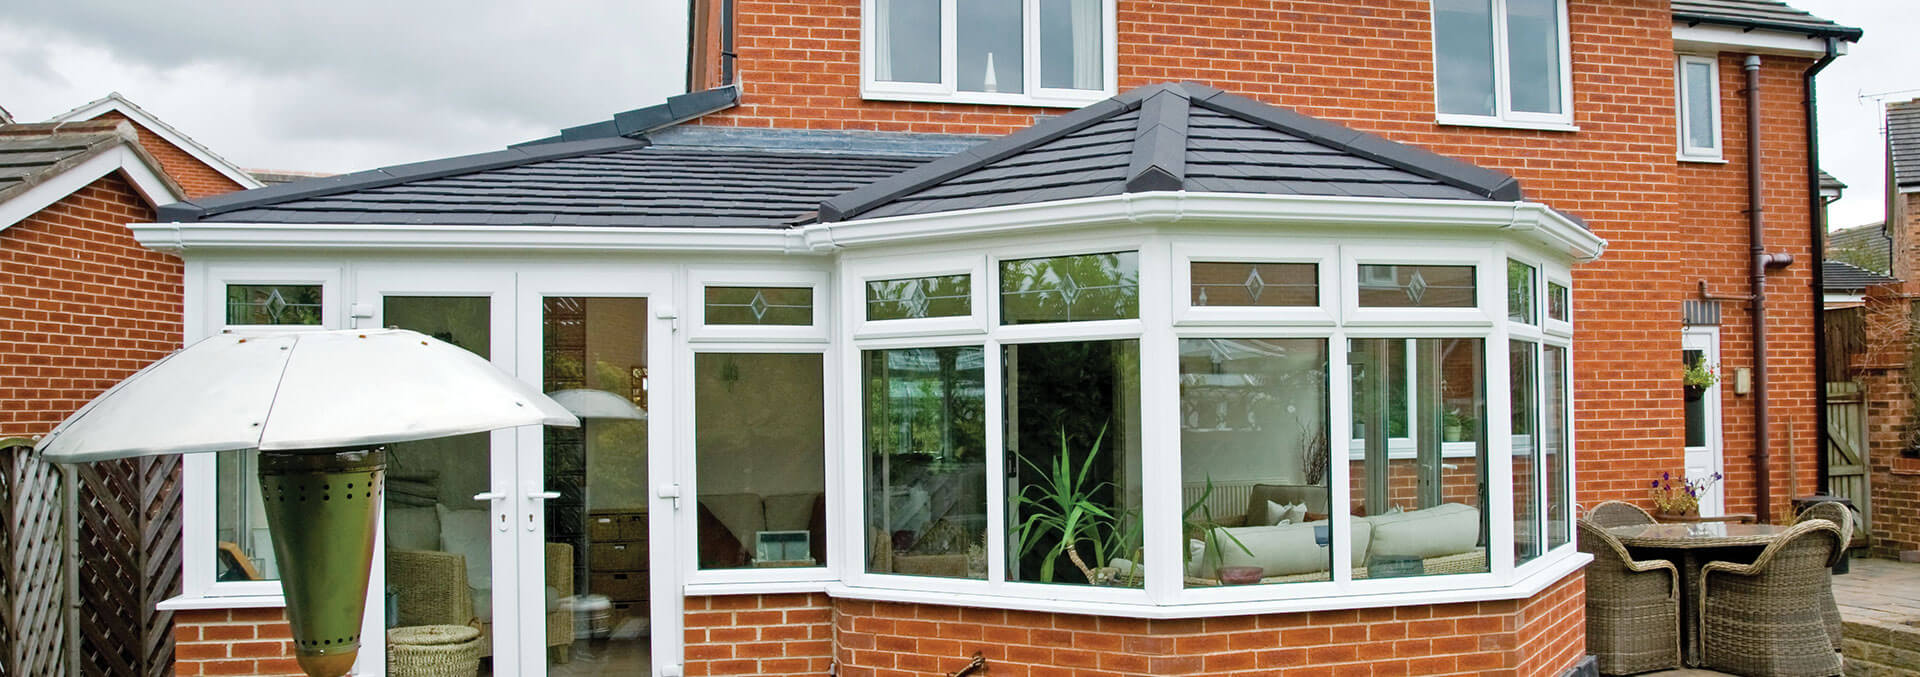 P Shaped conservatory with a grey tiled roof